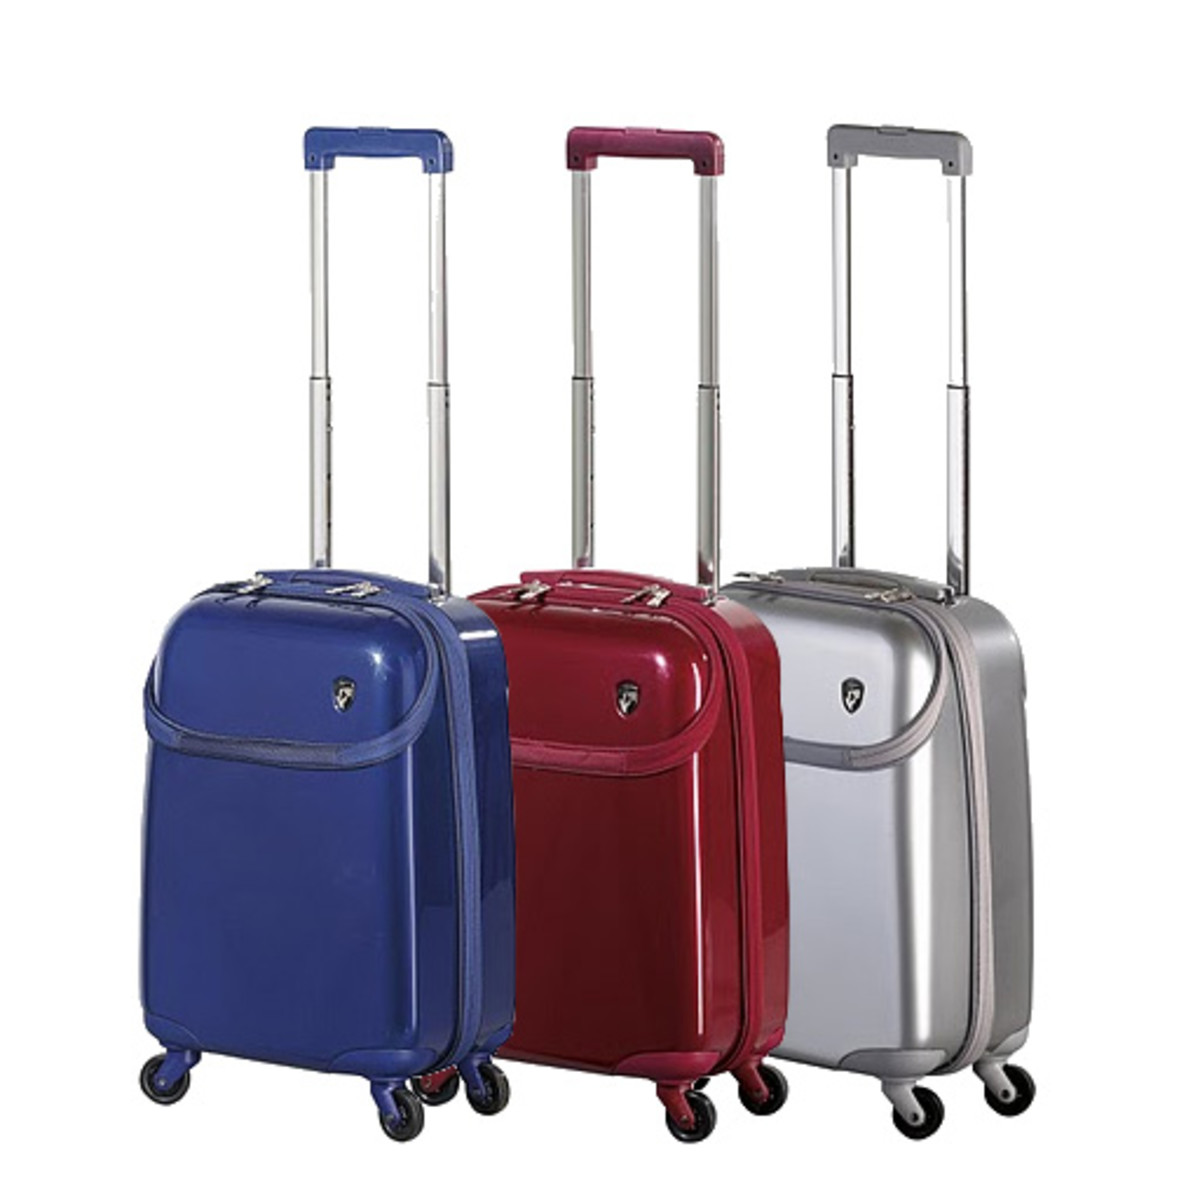 Heys USA EZ Computer Carry-Ons http://www.airlineintl.com/catalog/ez-computer-carryon-by-heys-usa